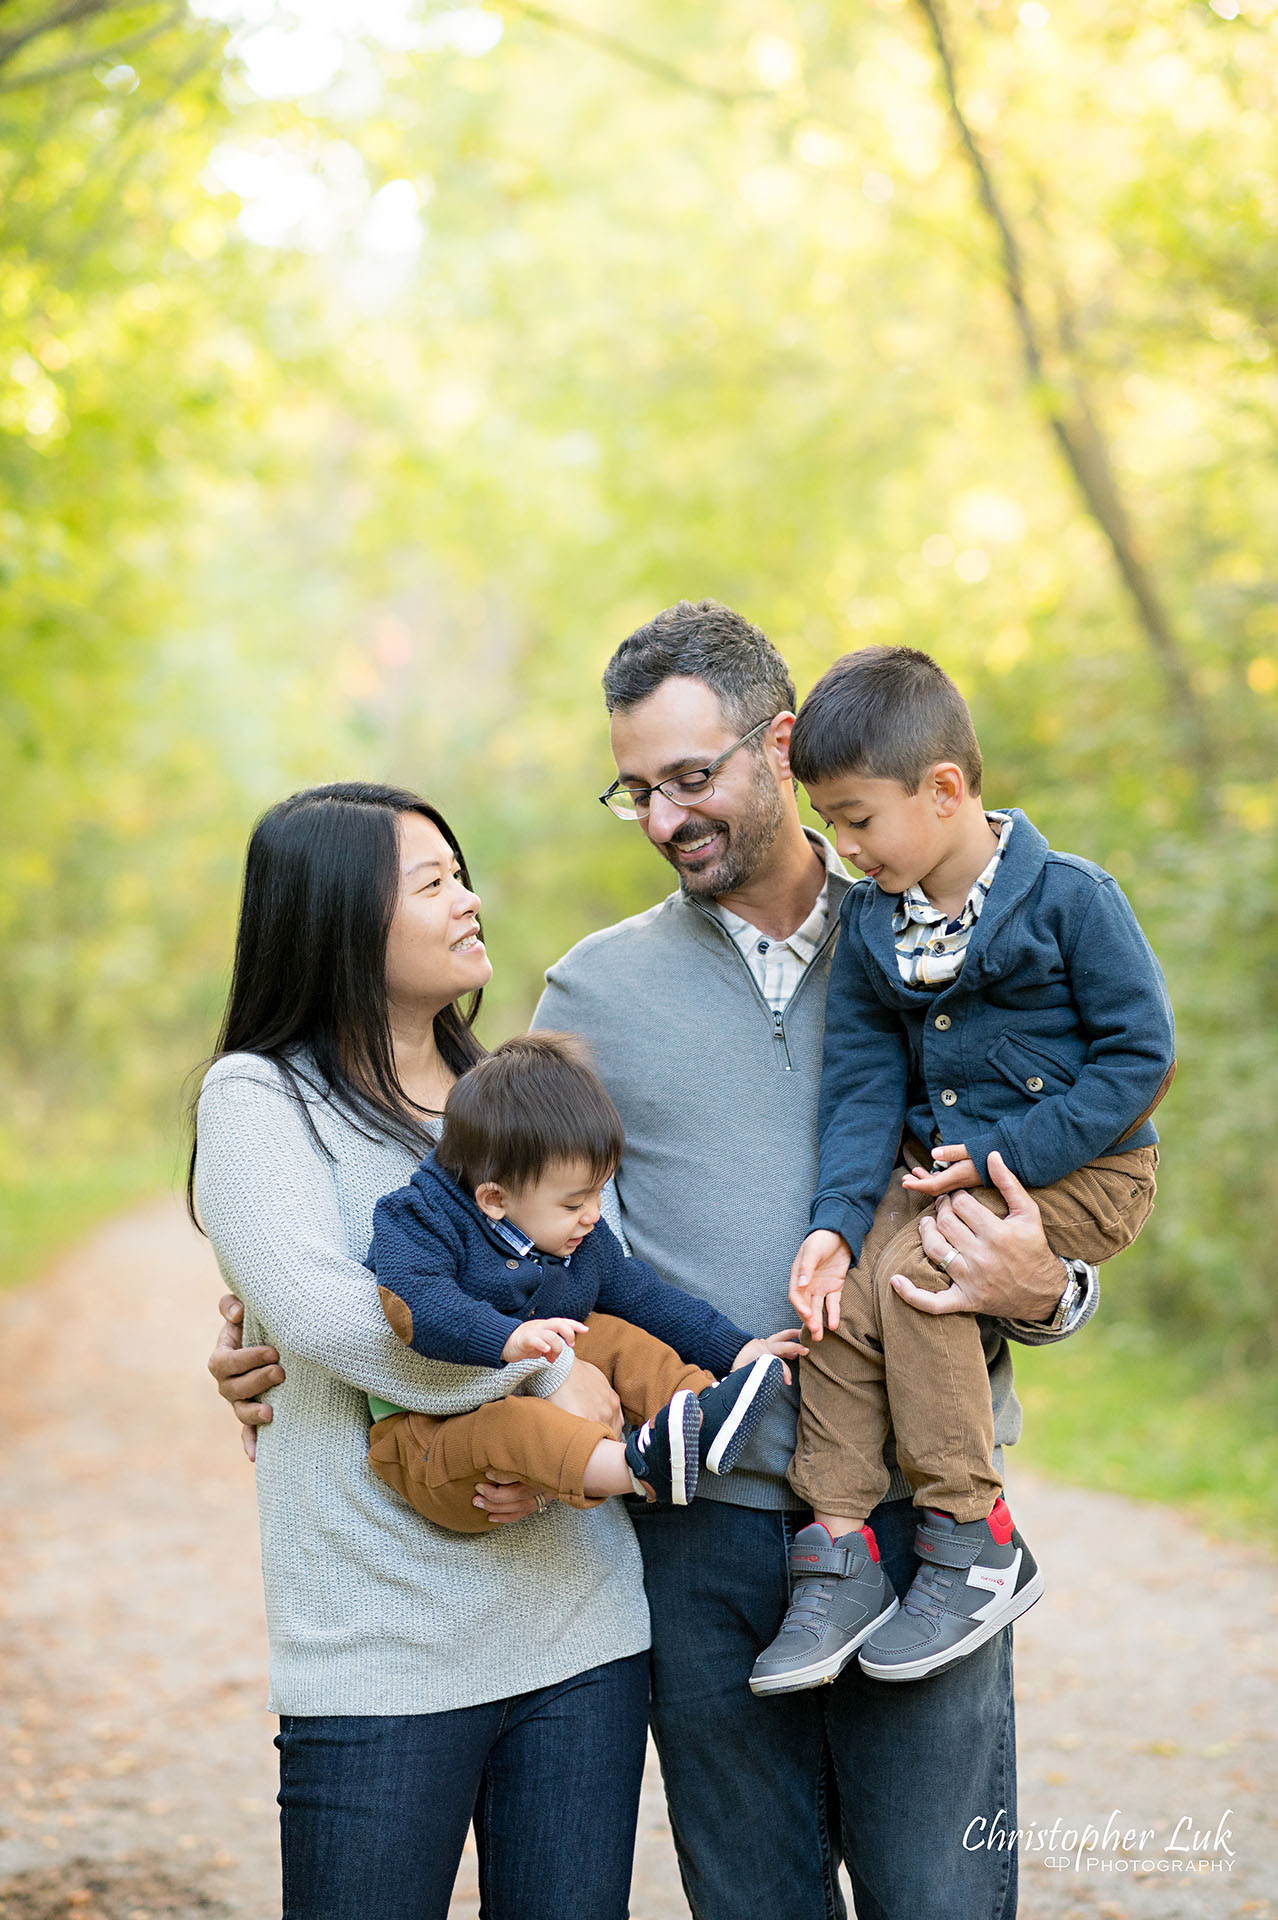 Christopher Luk Family Photographer Toronto Markham Unionville Autumn Fall Leaves Natural Candid Photojournalistic Sons Brothers Baby Boys Father Dad Mother Mom Motherhood Fatherhood Holding Hands Walking Together Trail Pathway Forest Fun Happy